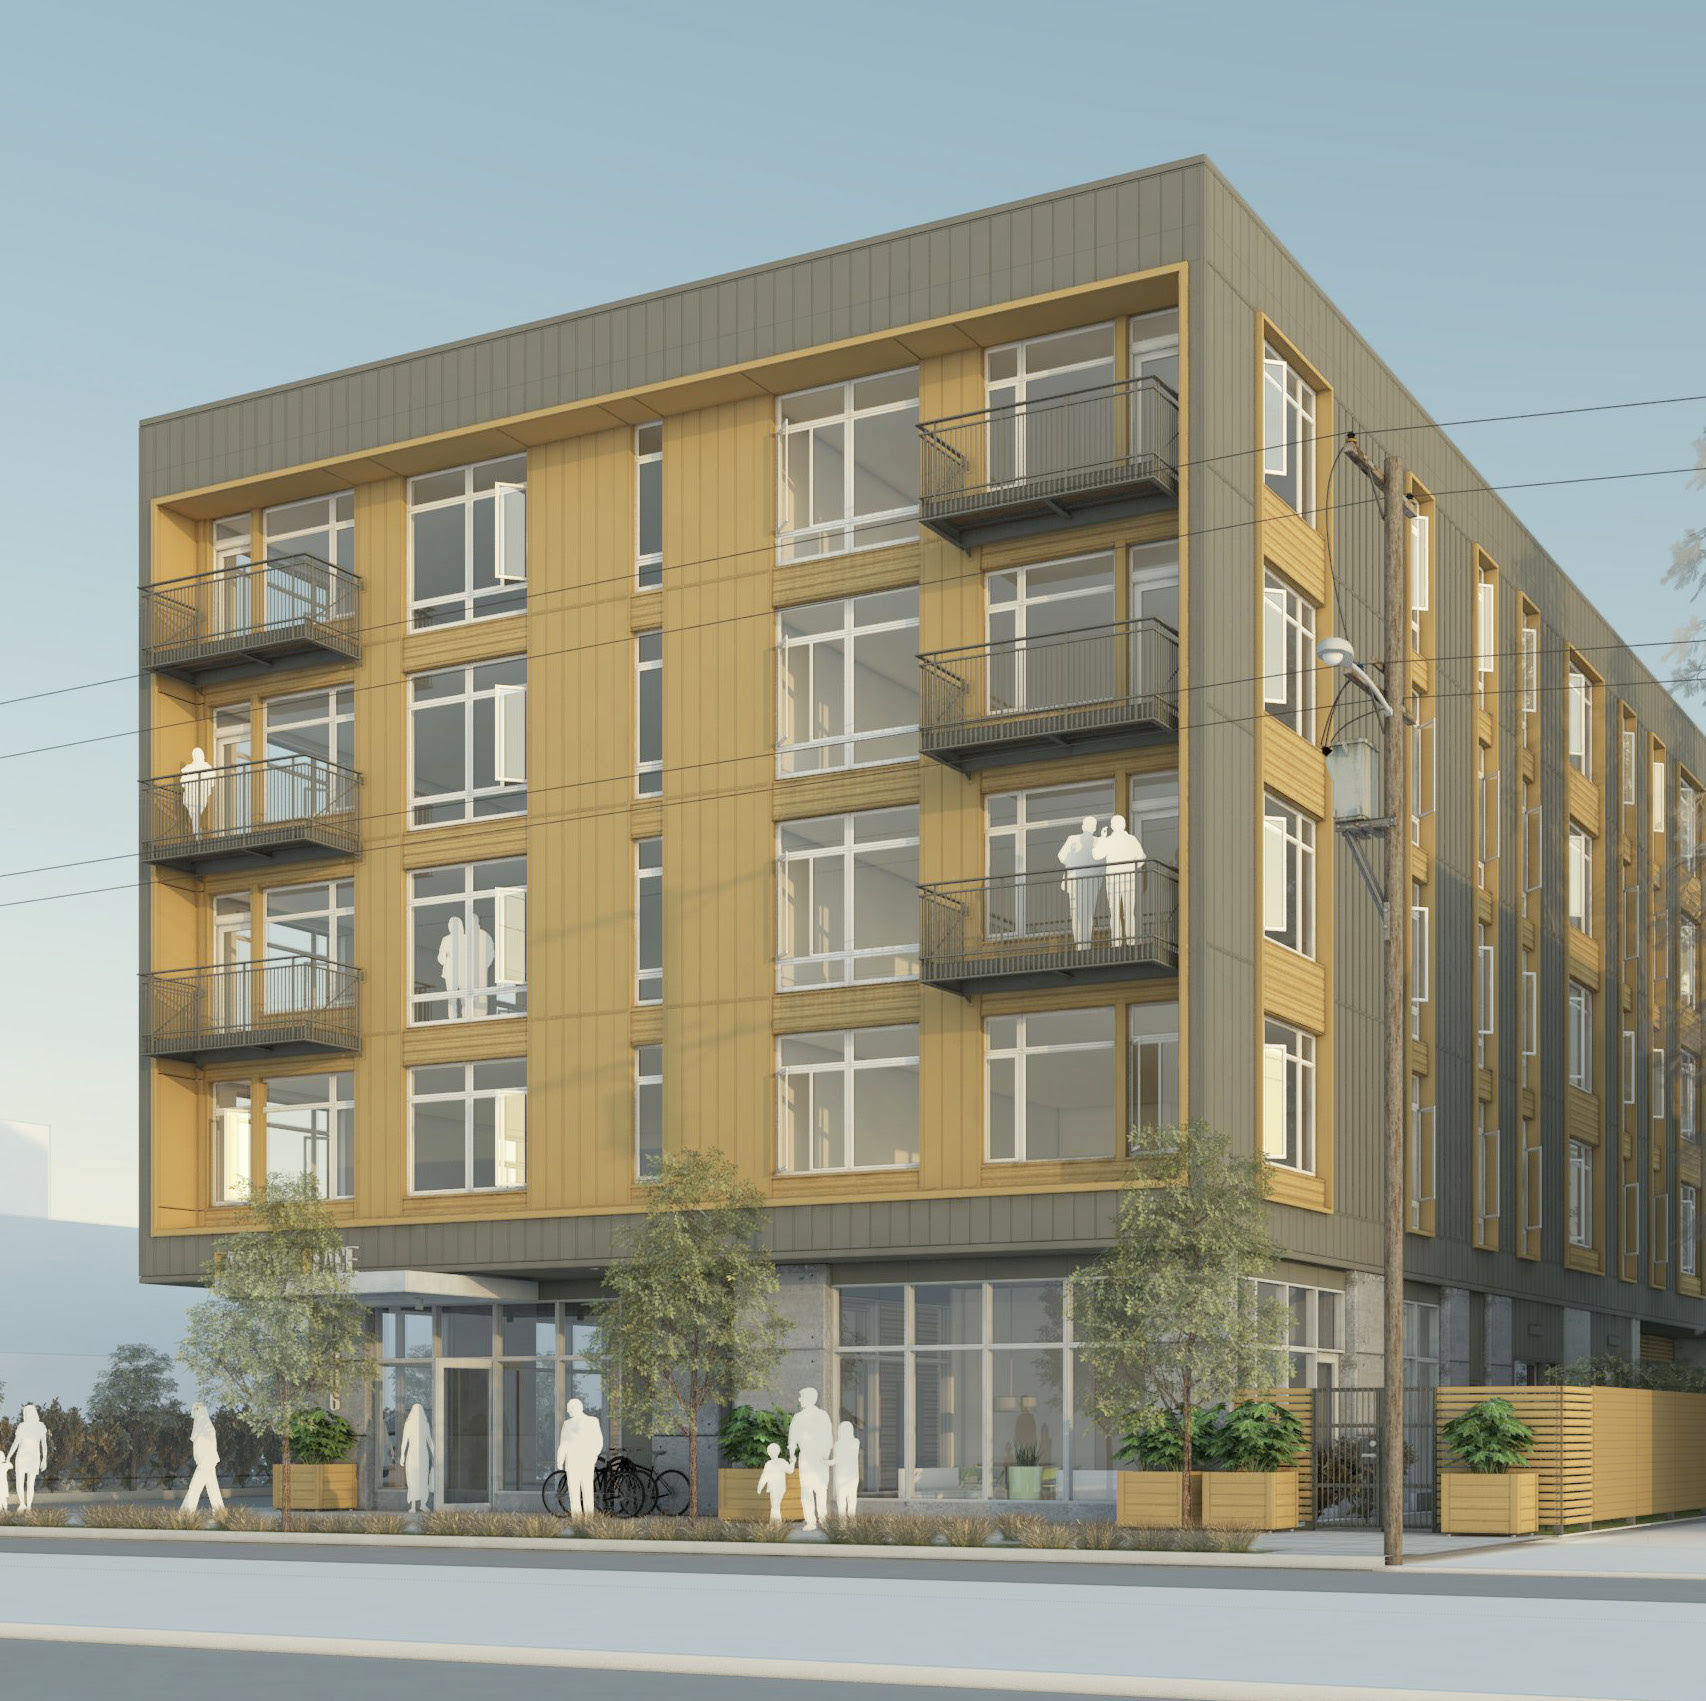 Apartments on Outer East Burnside approved by Design Commission